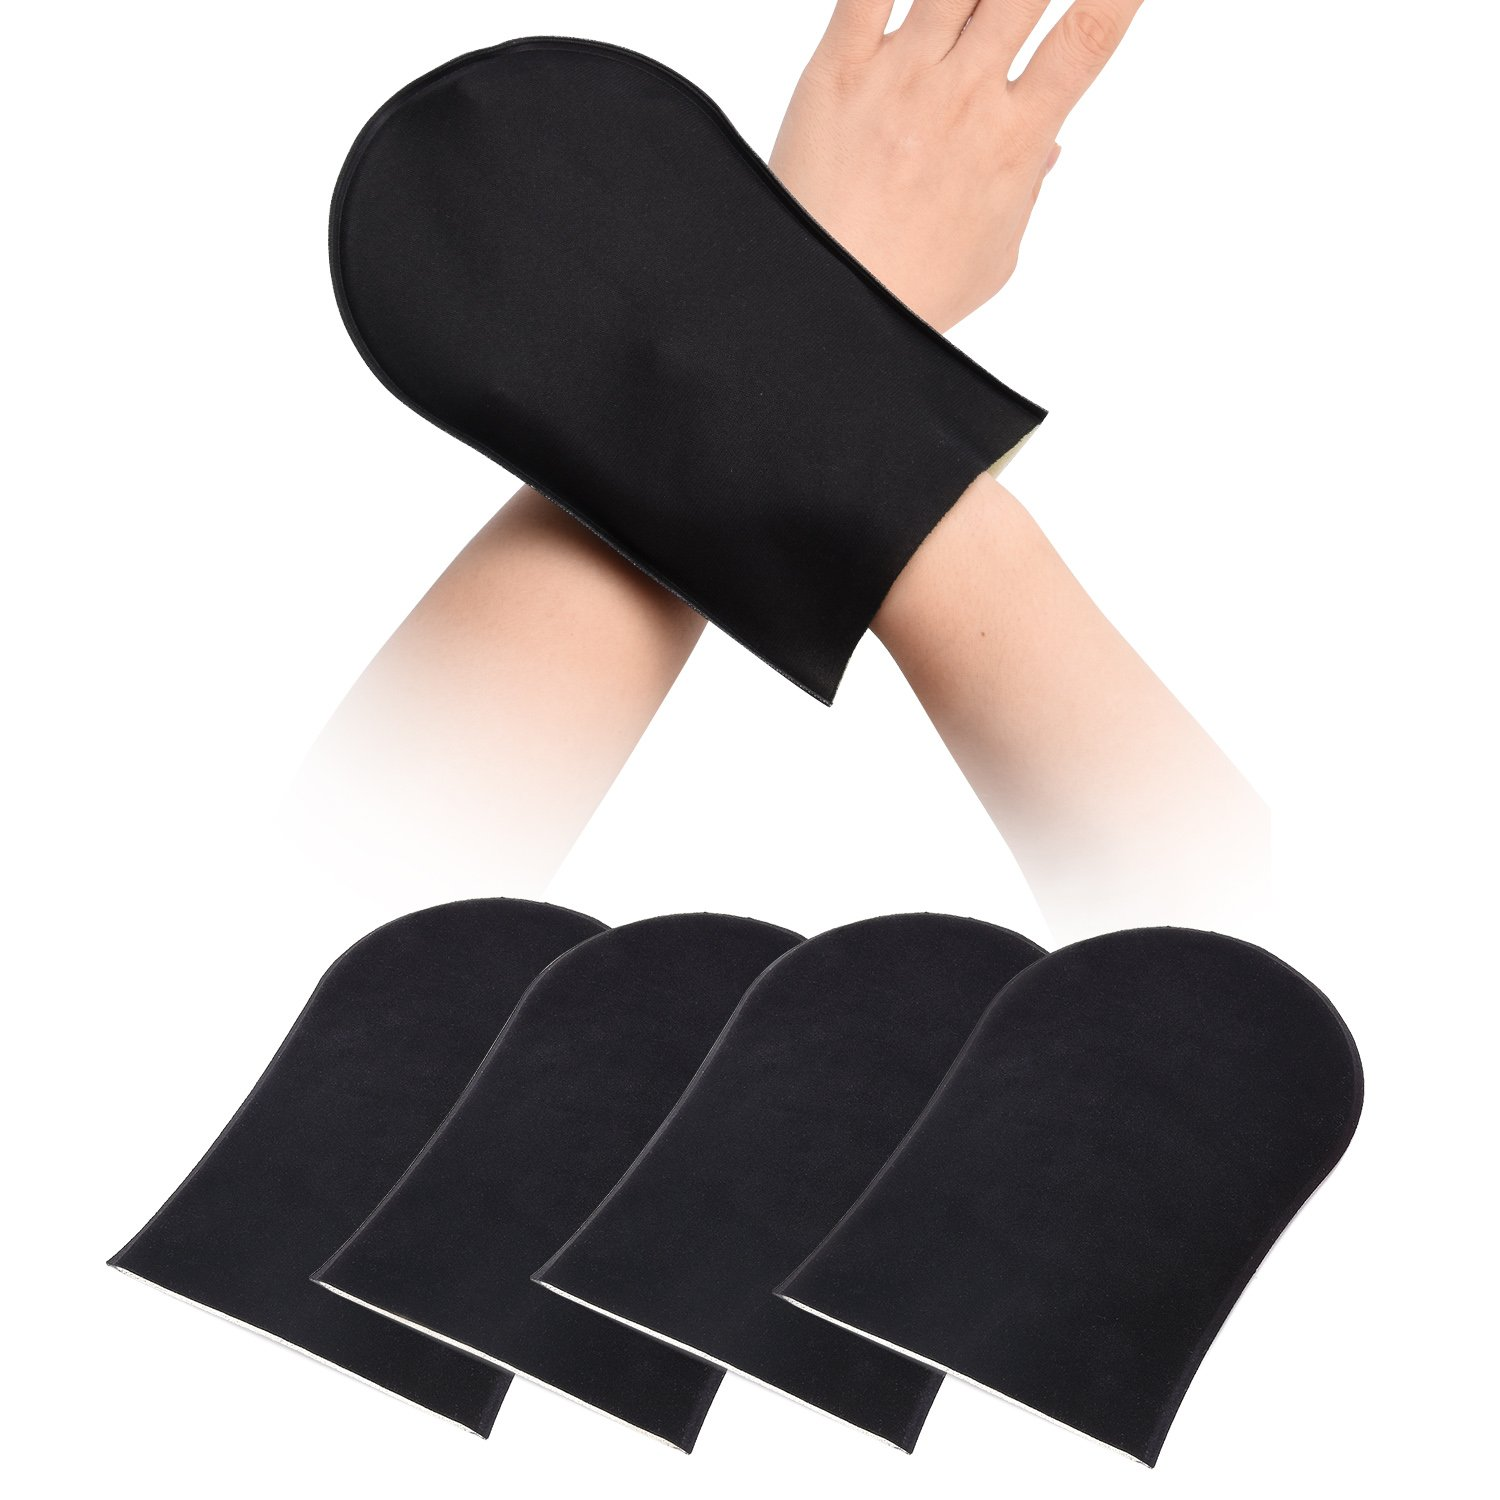 Self Tanning Mitts for Back Face Body, Exfoliating Tan Applicator, Sunless Lotion Cream Spray Tanner Gloves Set Premium Soft Black Washable Mitten Kit - (2 Pair)